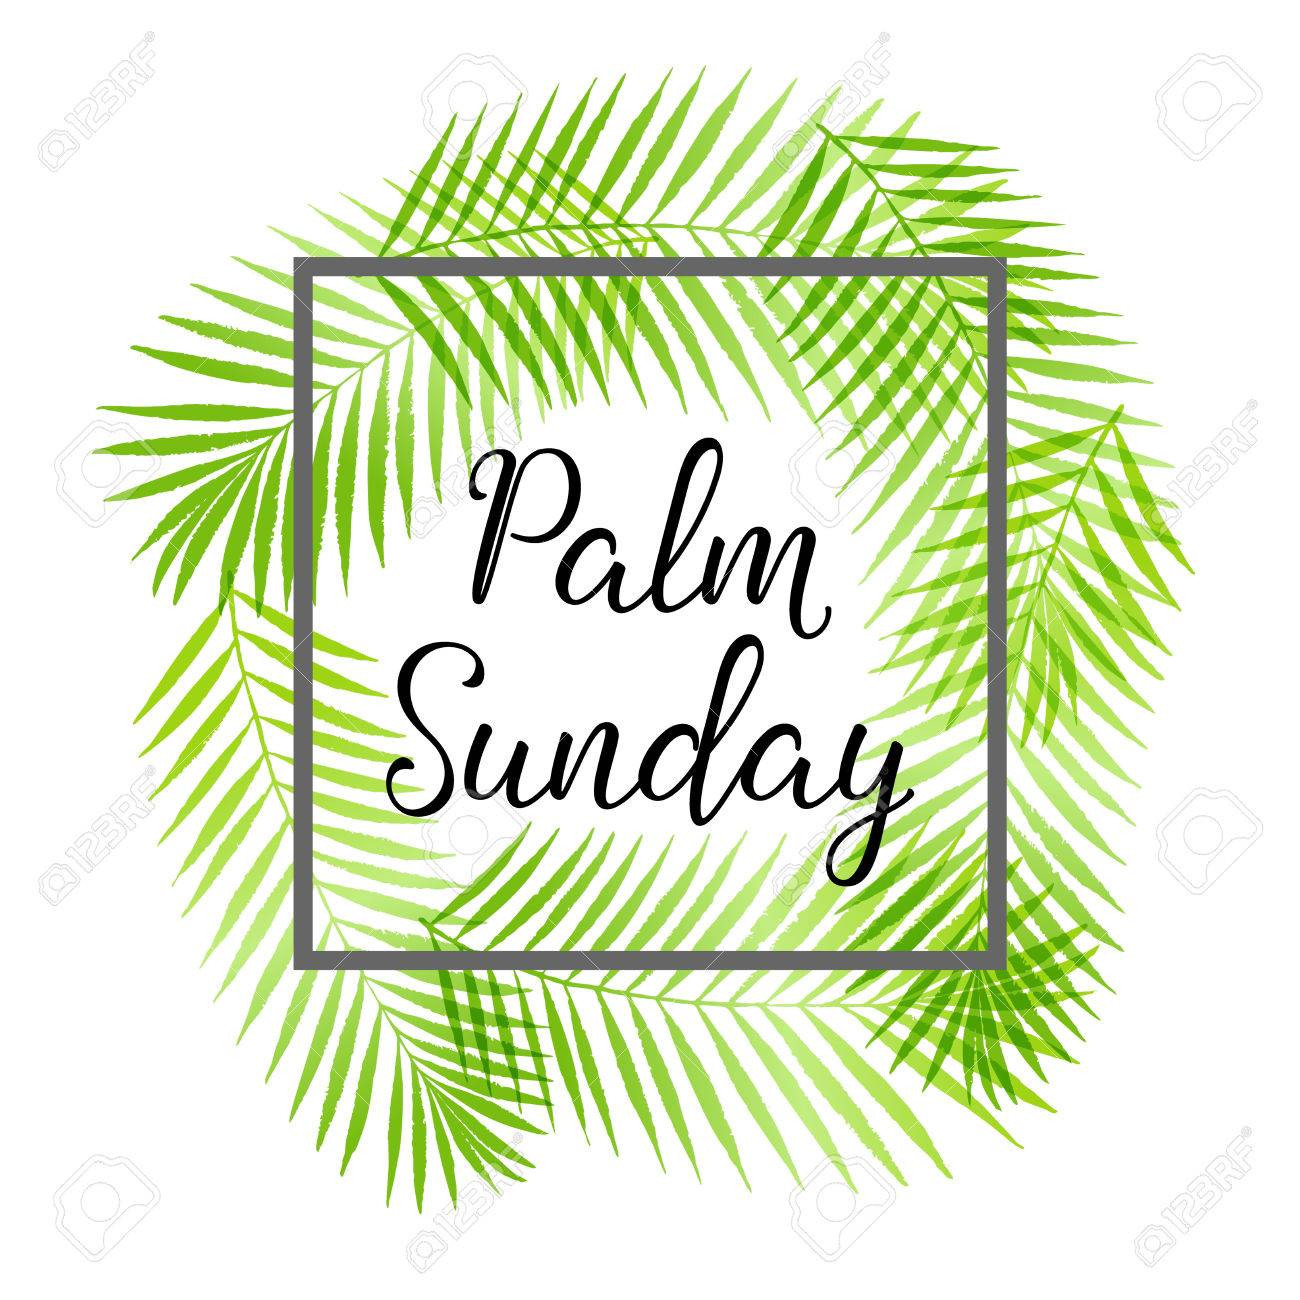 Palm Sunday Clipart at GetDrawings.com.